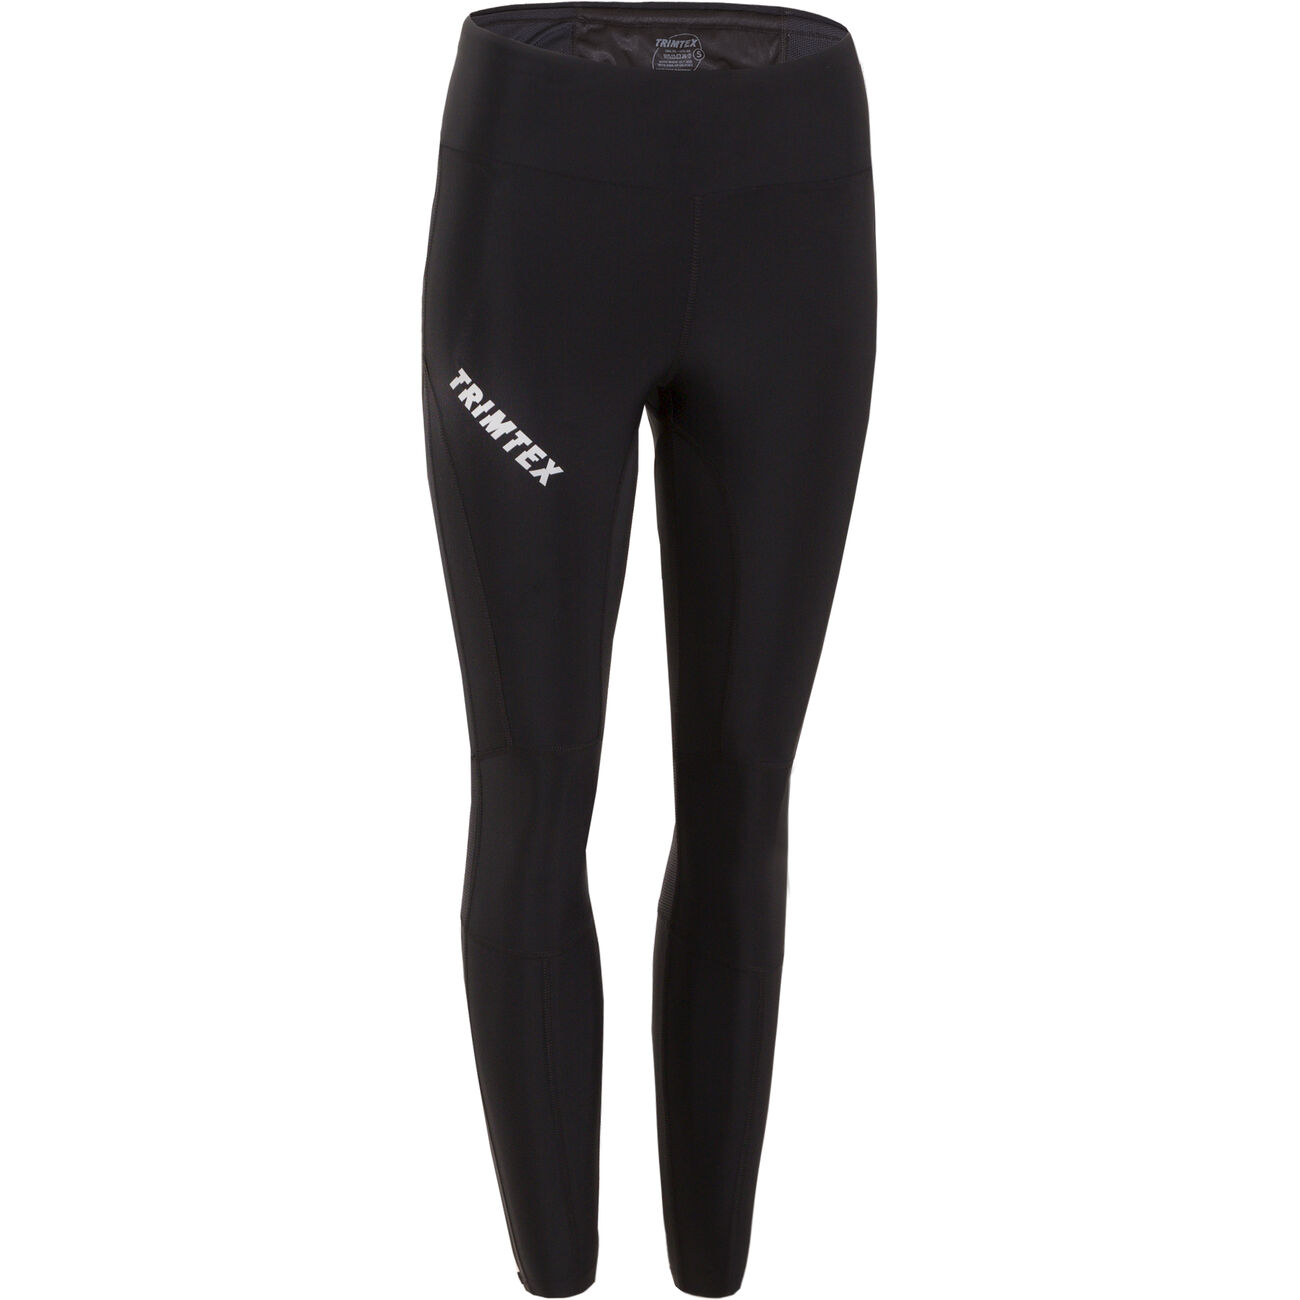 Compress tights women's